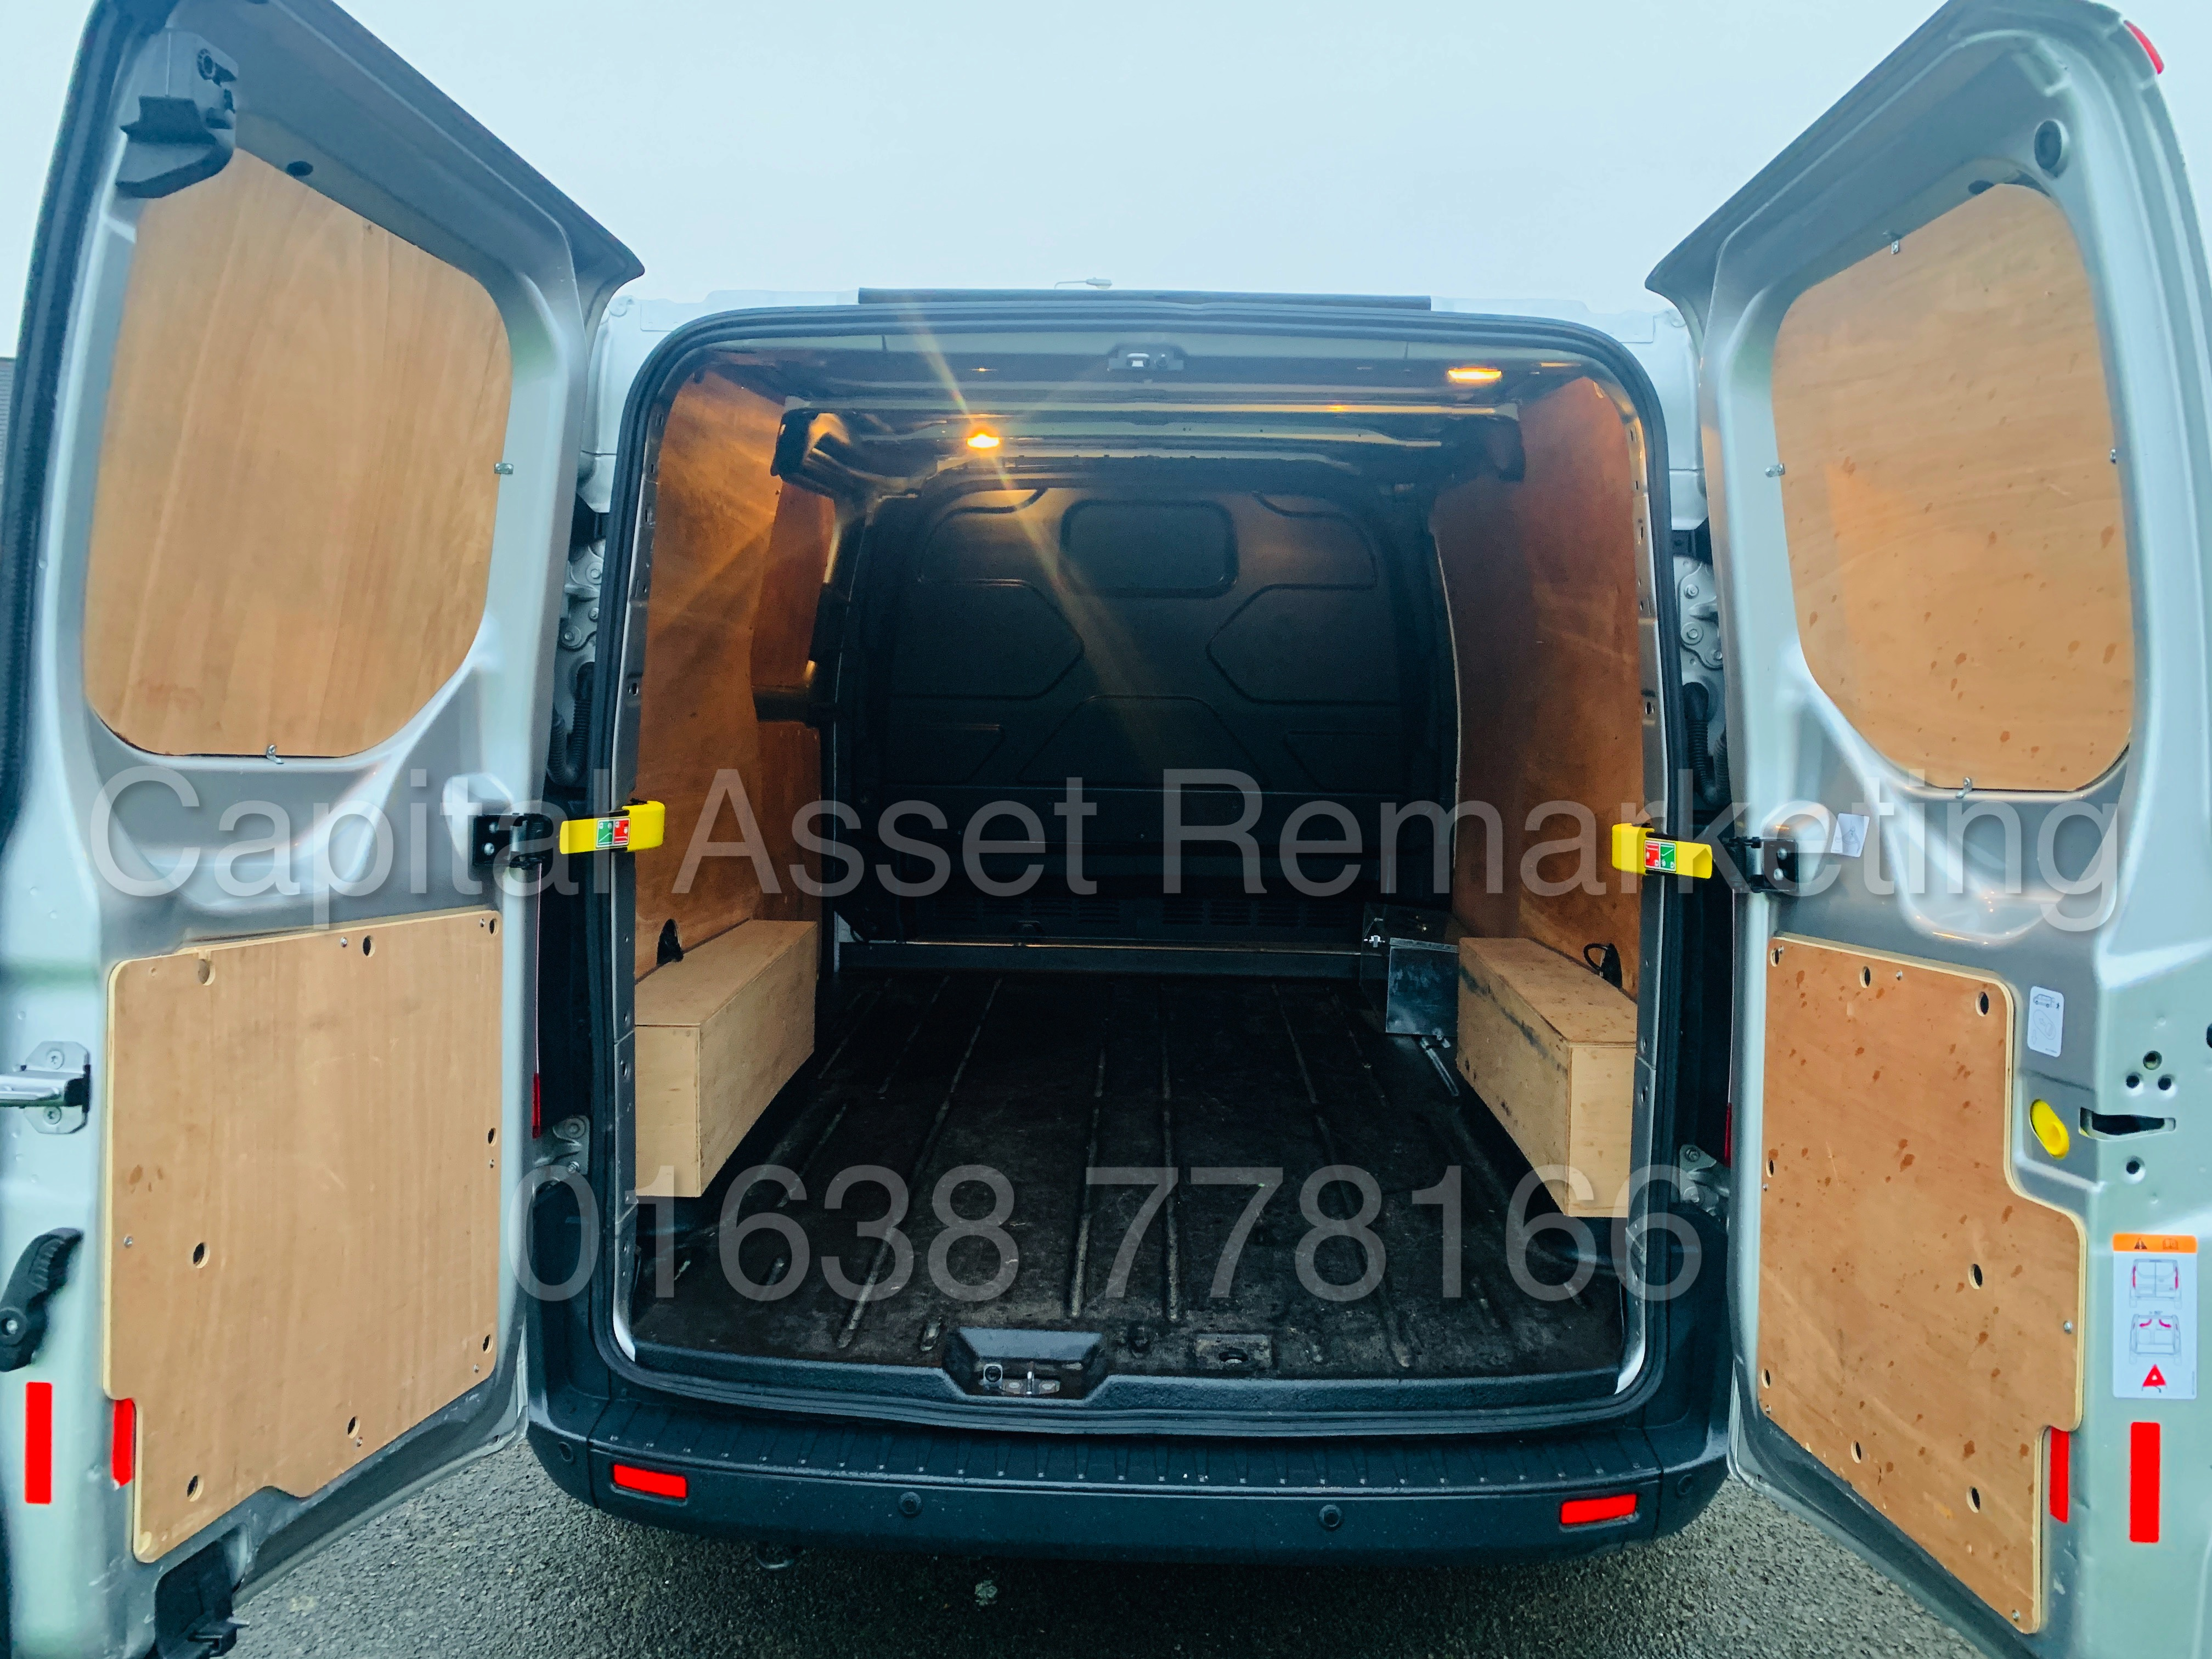 (On Sale) FORD TRANSIT *TREND* 290 SWB (2017 - EURO 6 / AD-BLUE) '2.0 TDCI - 130 BHP - 6 SPEED' - Image 22 of 41